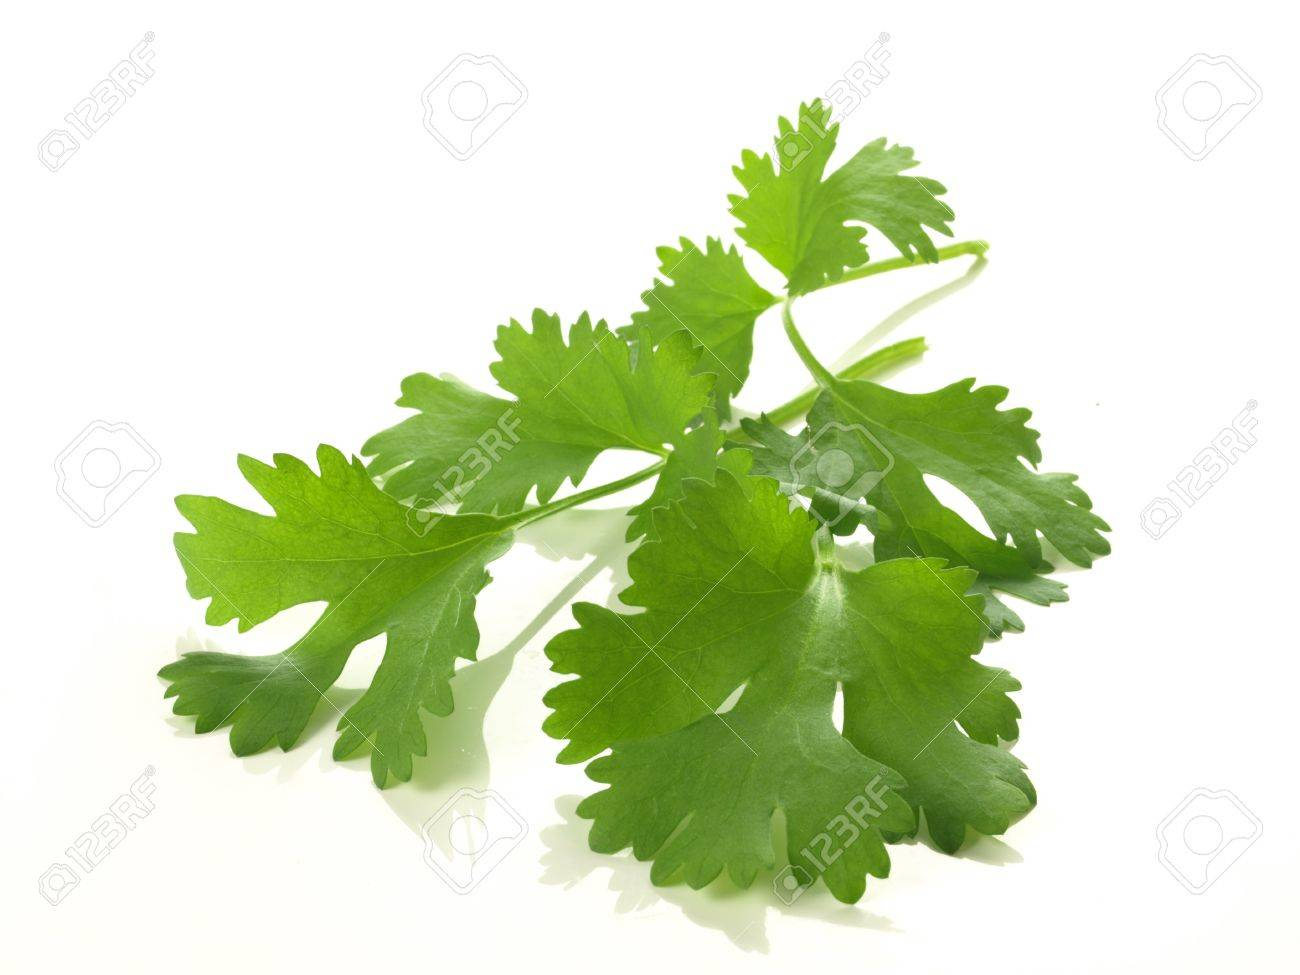 Branch of coriander on isolated white background - 13805121